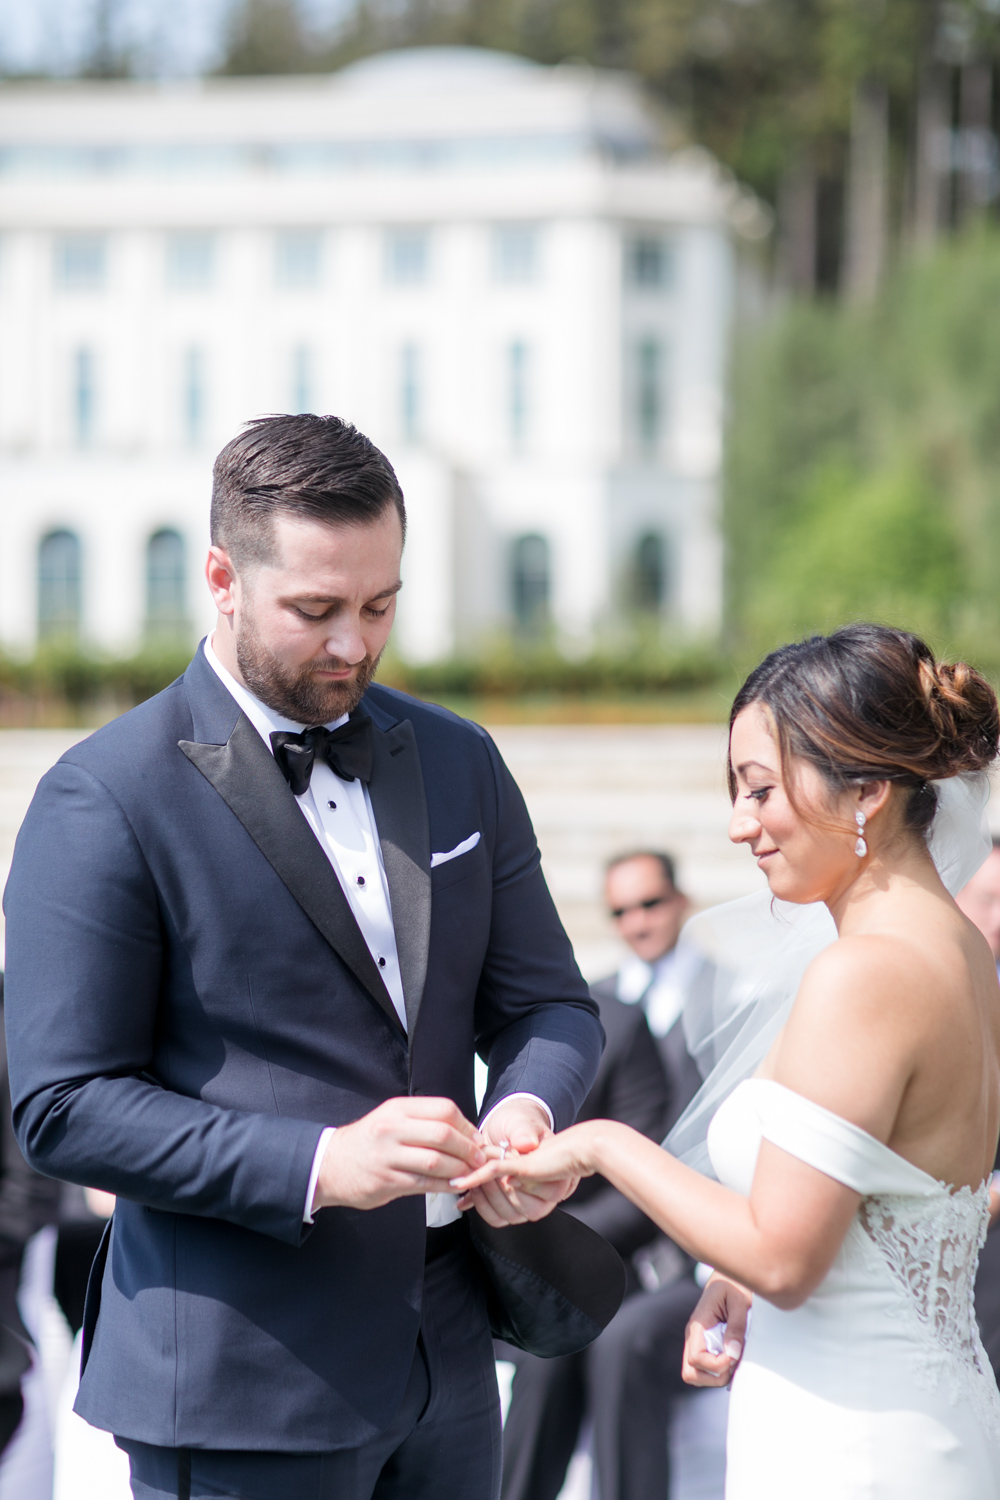 powerscourt hotel ceremony outside groom in black tie tux putting on a wedding ring on his bride's hand